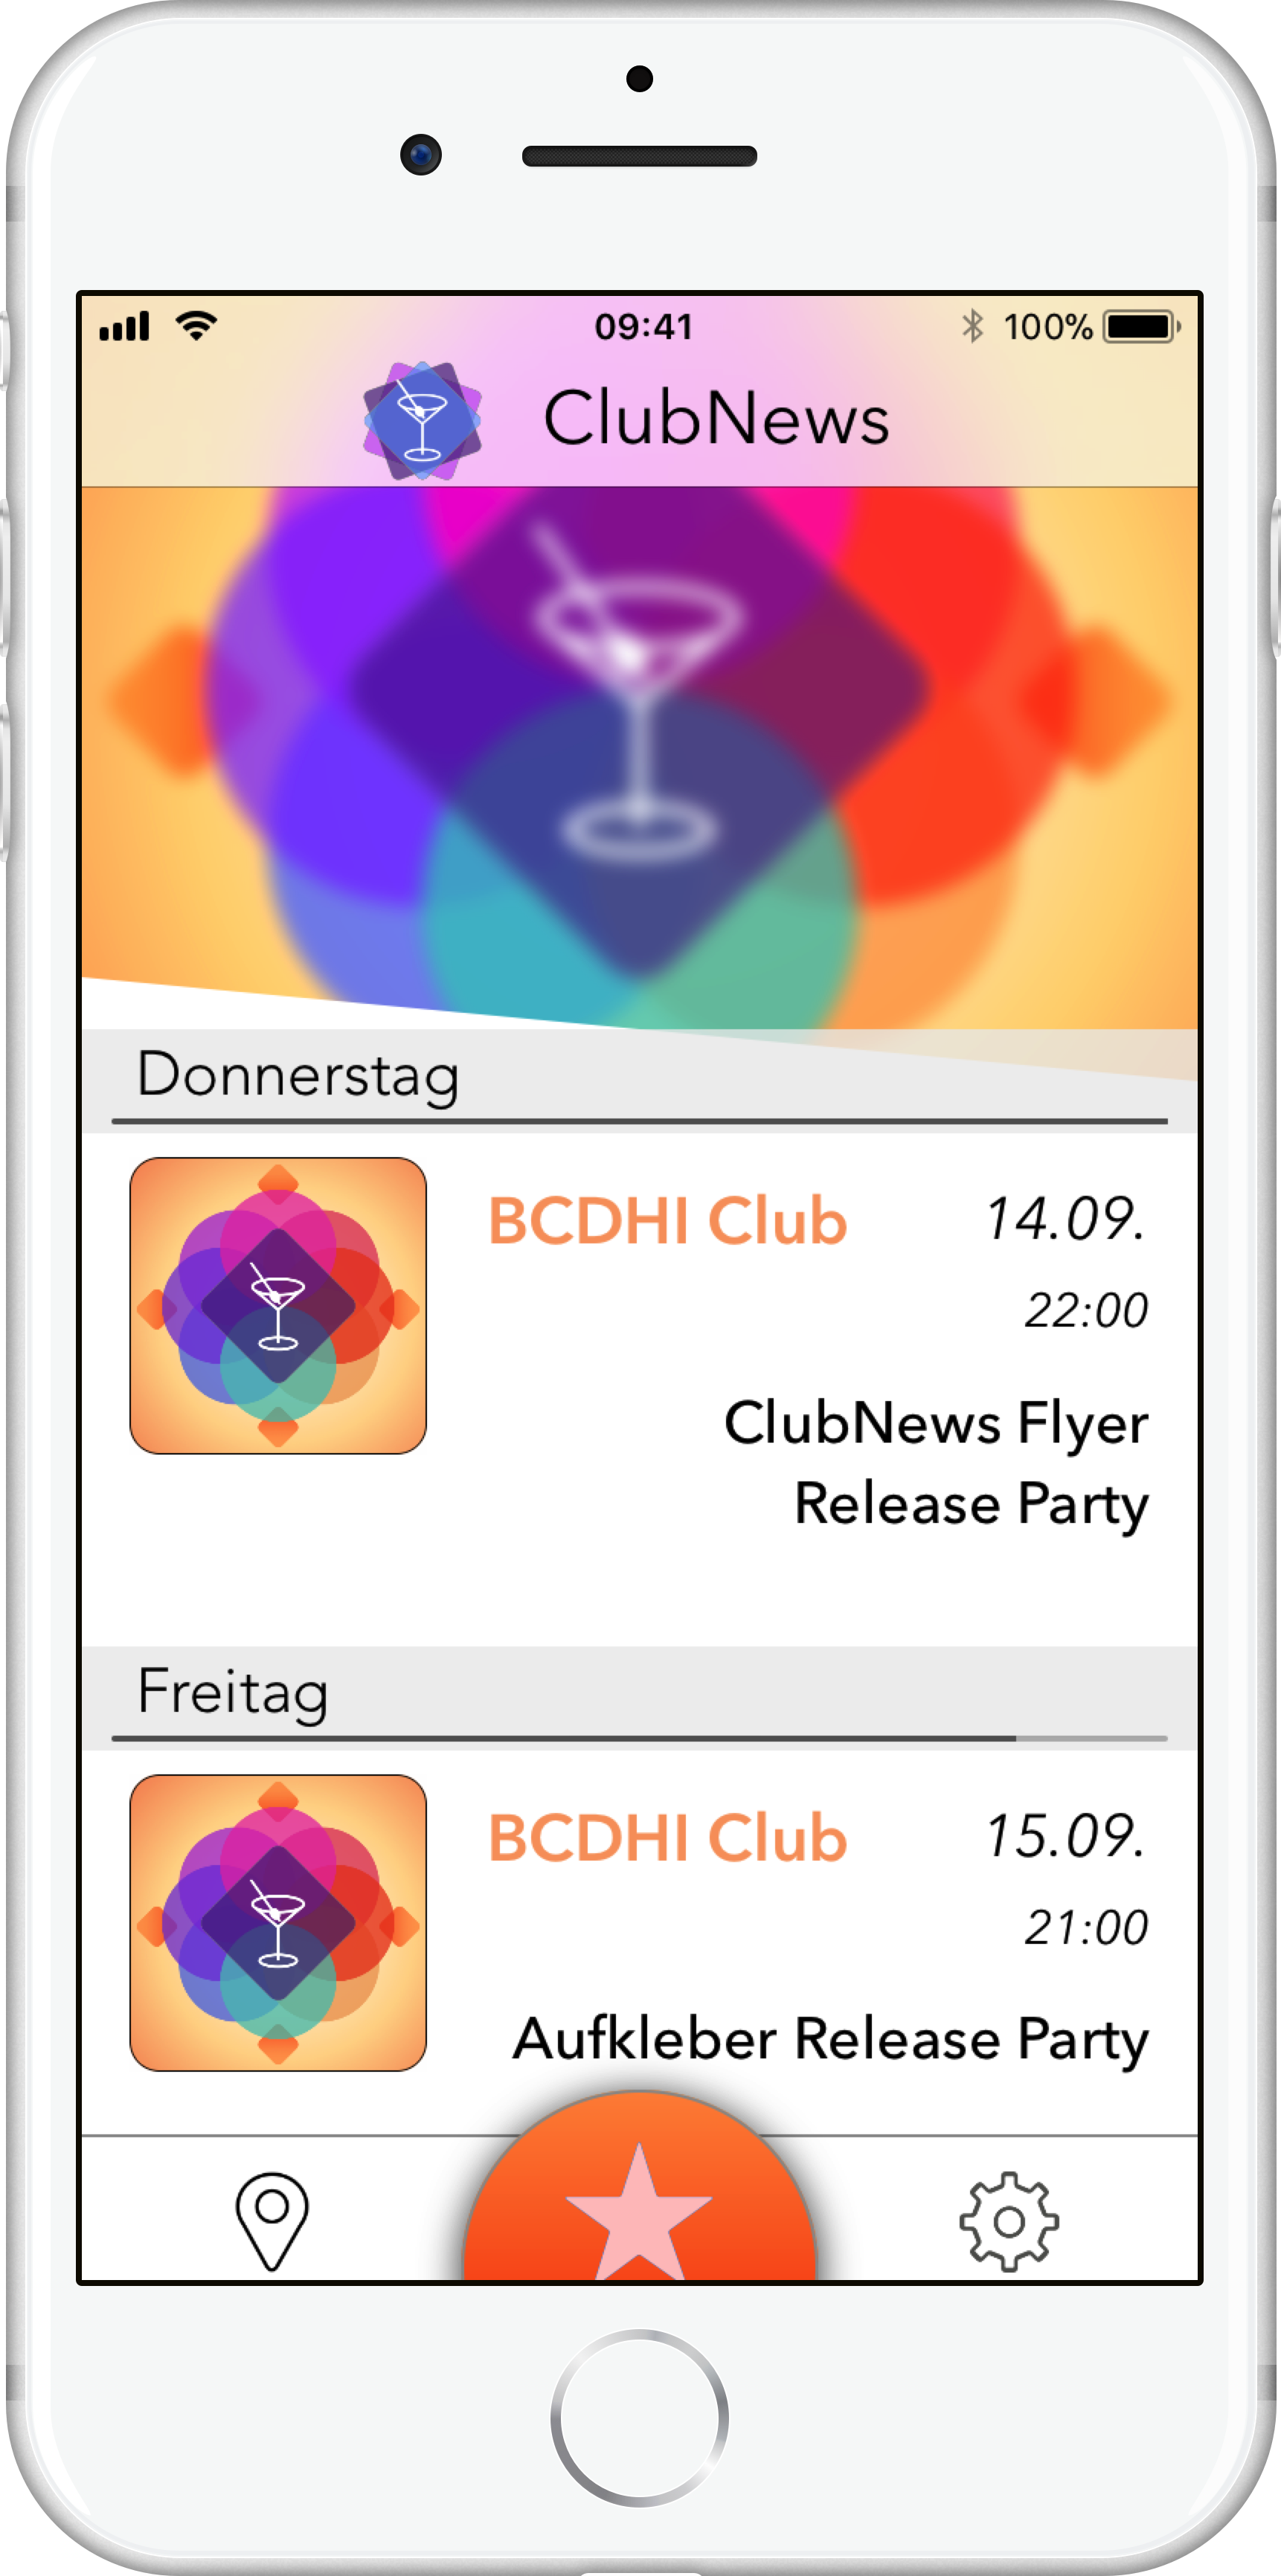 image of the app